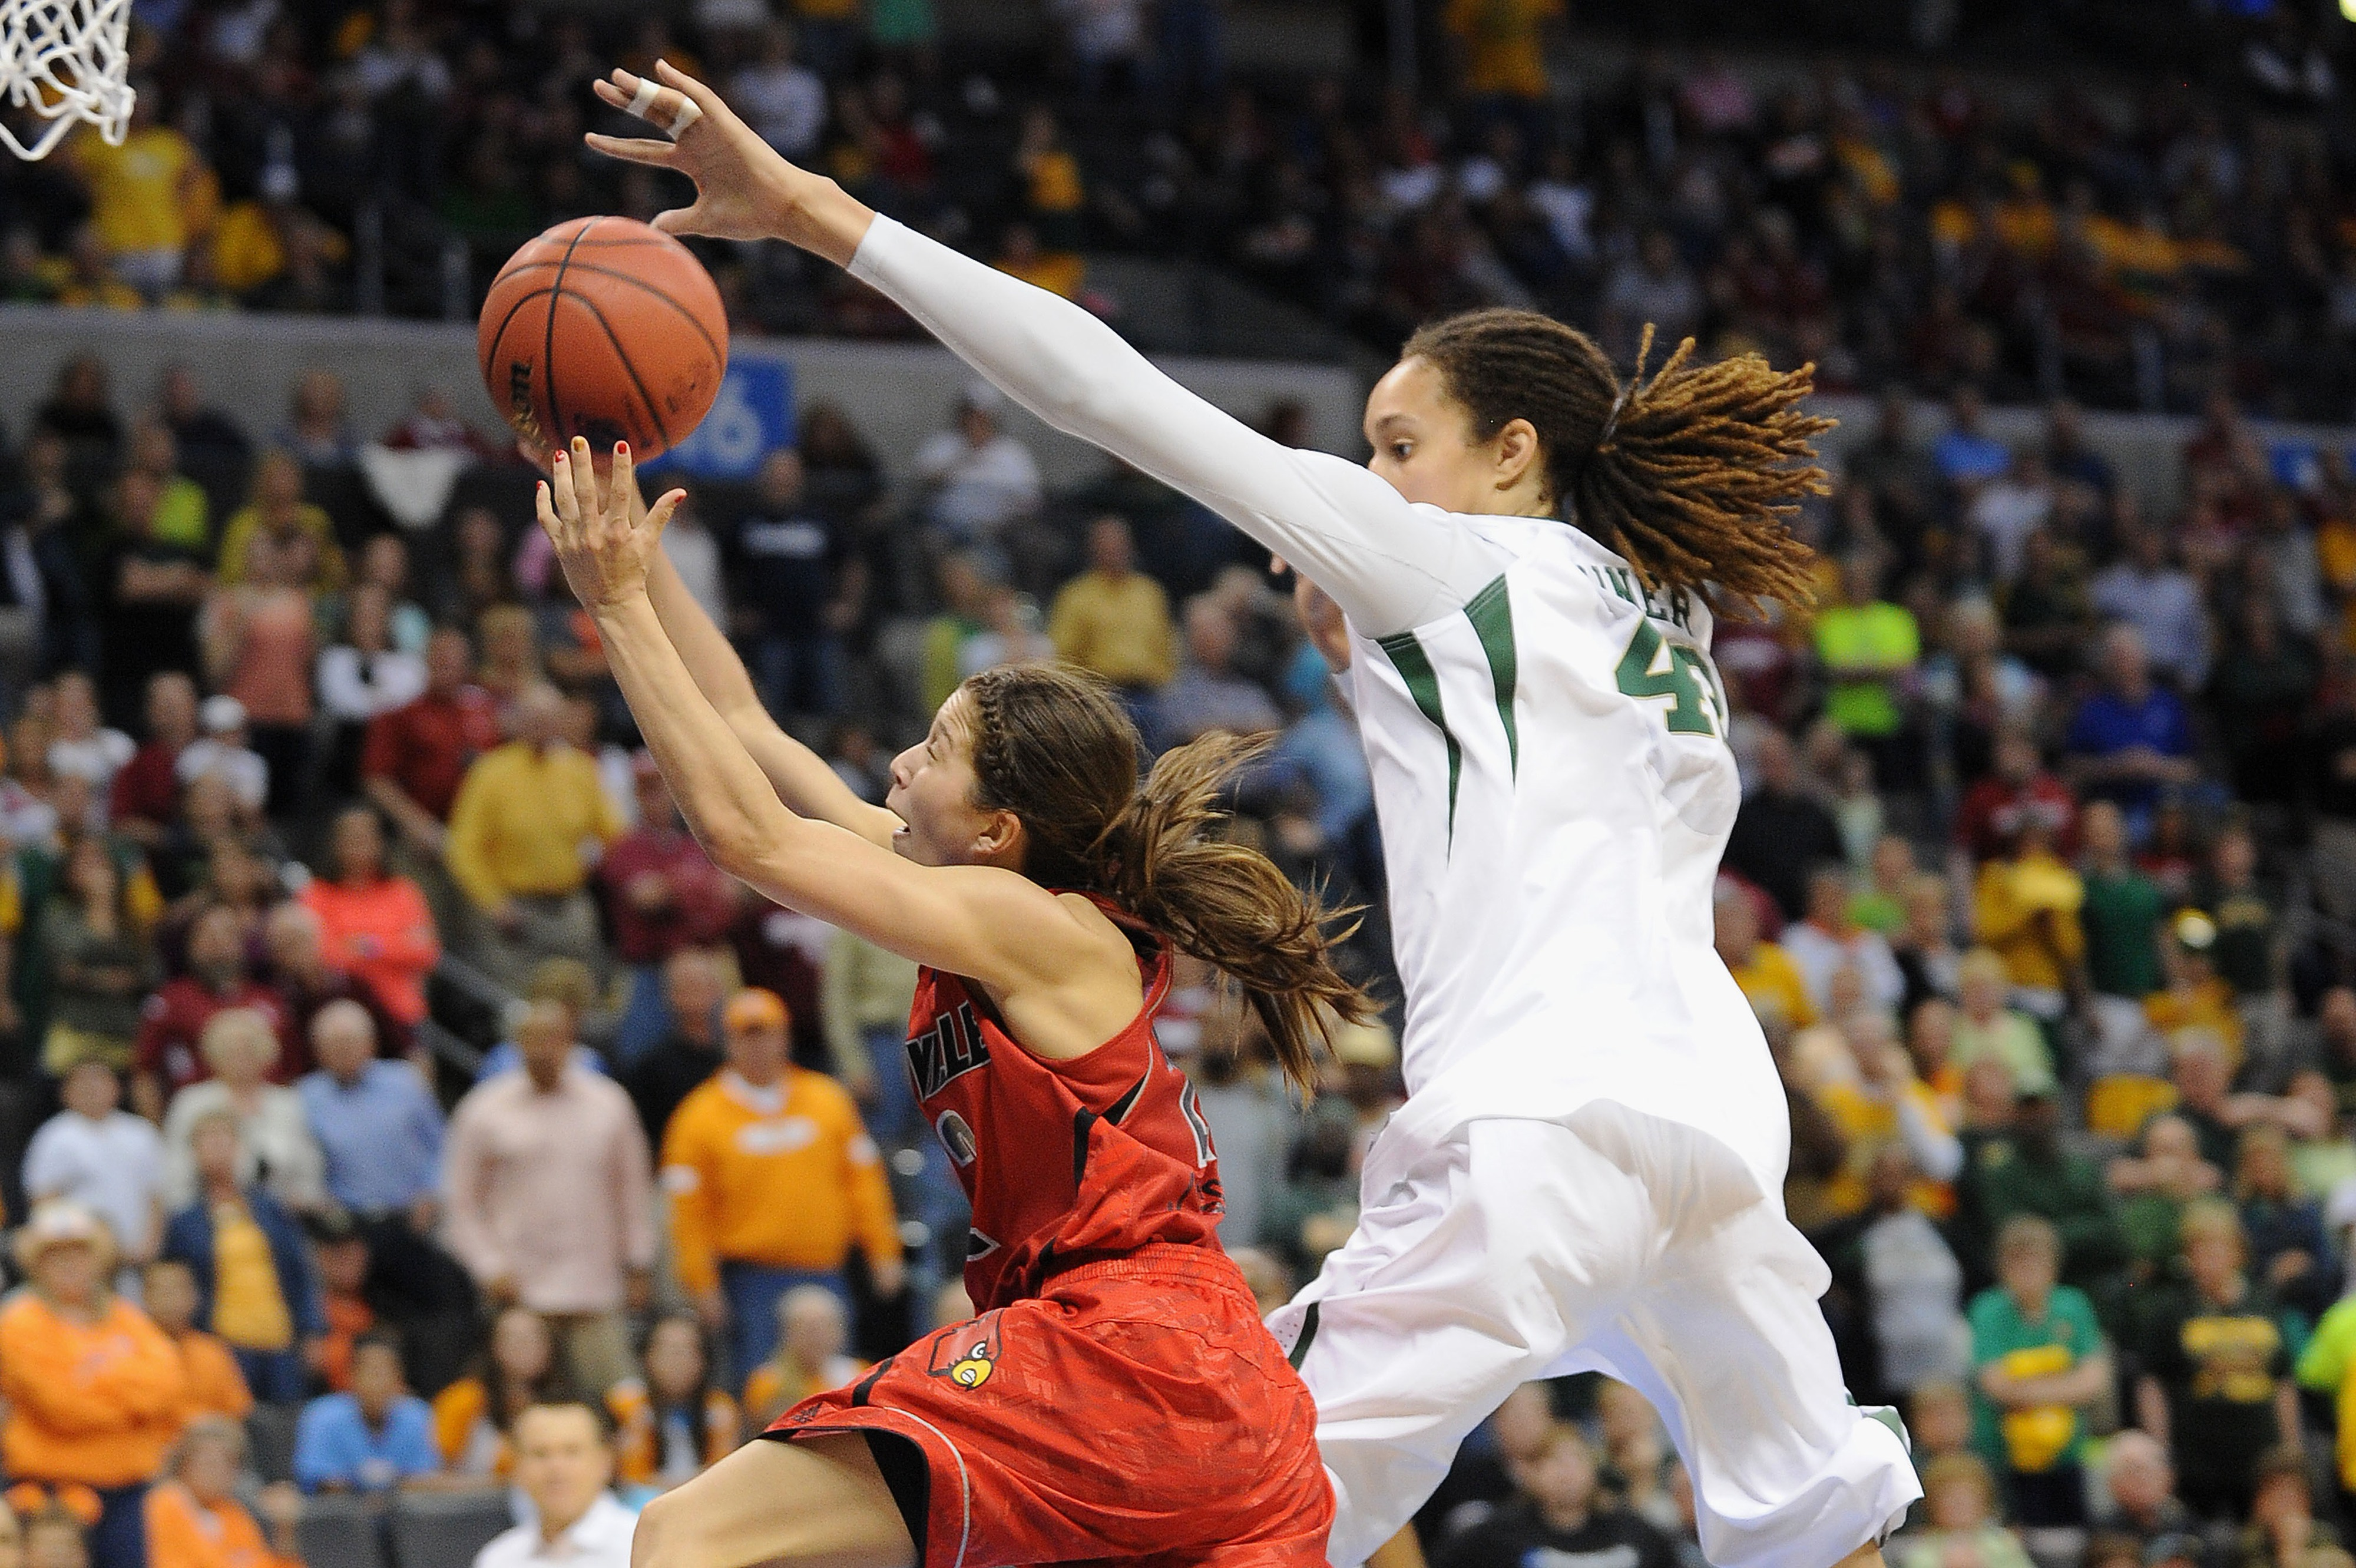 Even in loss, former Baylor Lady Bears star Brittney Griner was involved in many of the biggest stories of 2013.